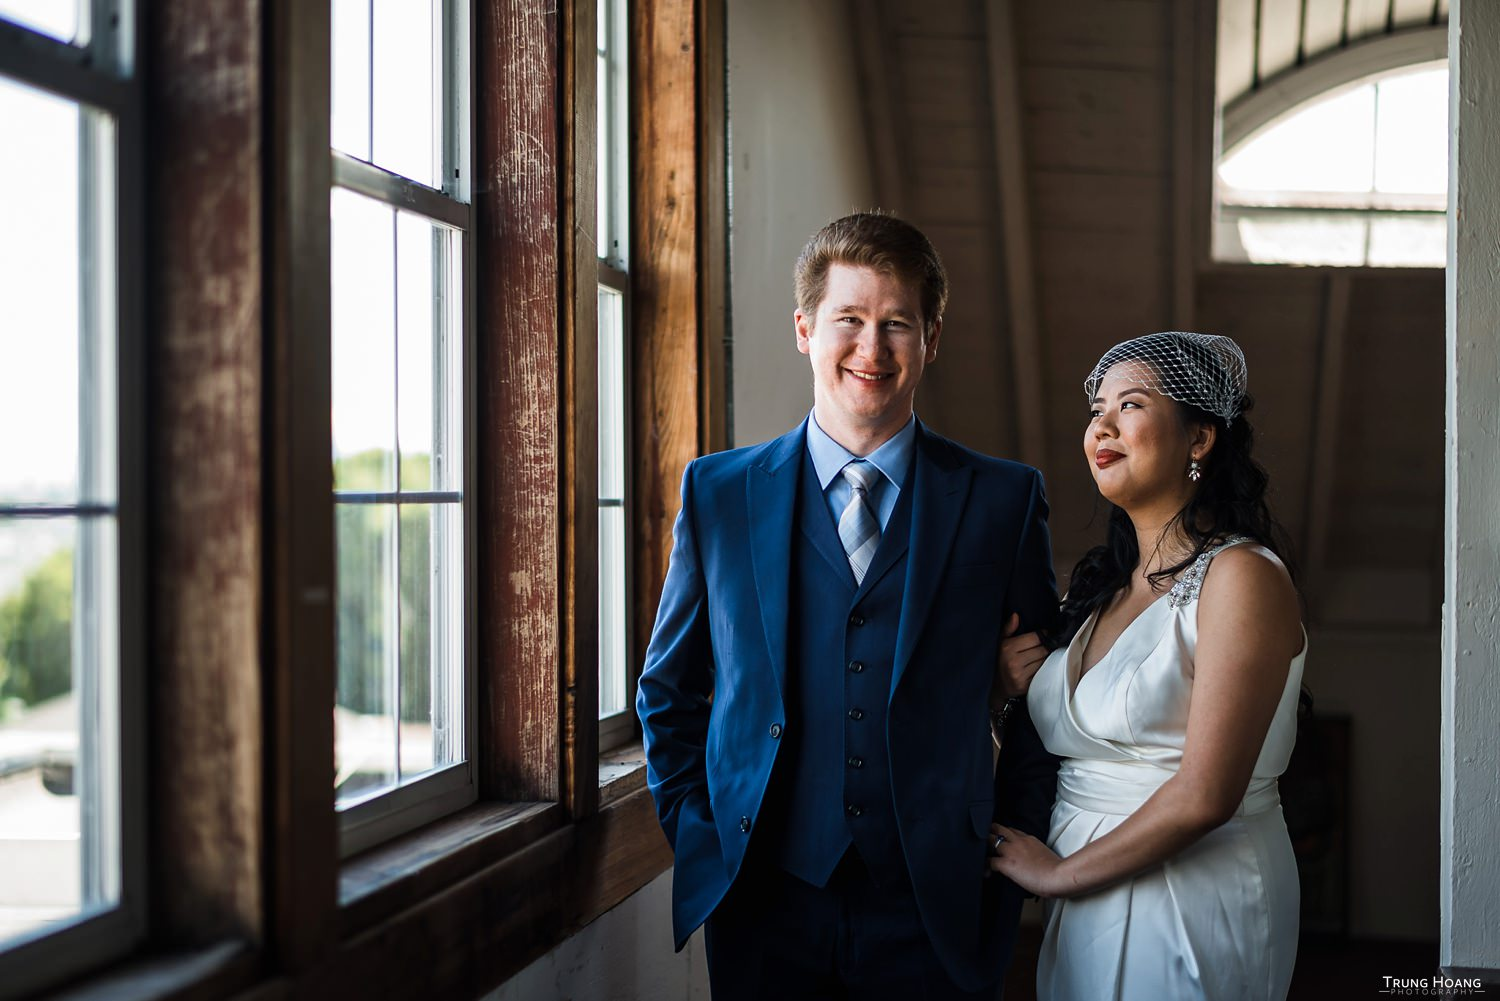 Window light wedding portrait Bay Area wedding photography